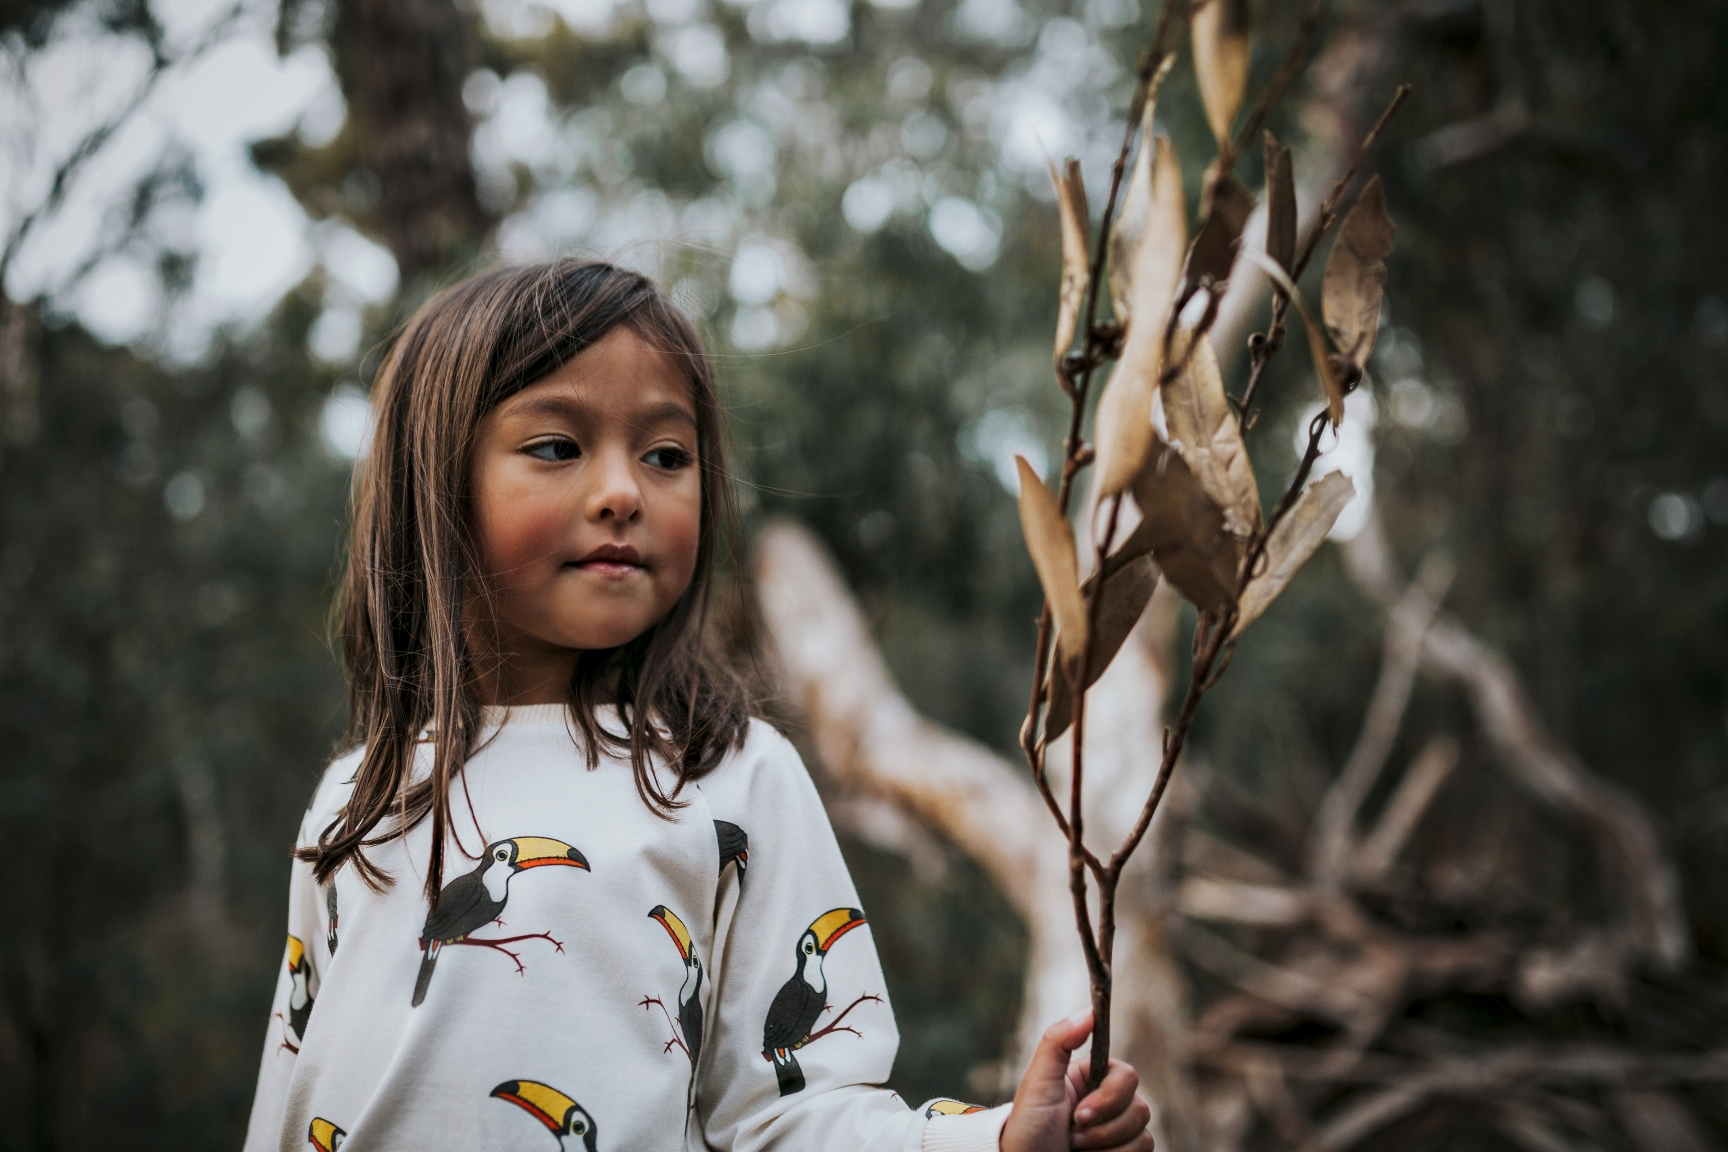 girl-branch-toucan-sweater-commercial-photographer-siida.jpg